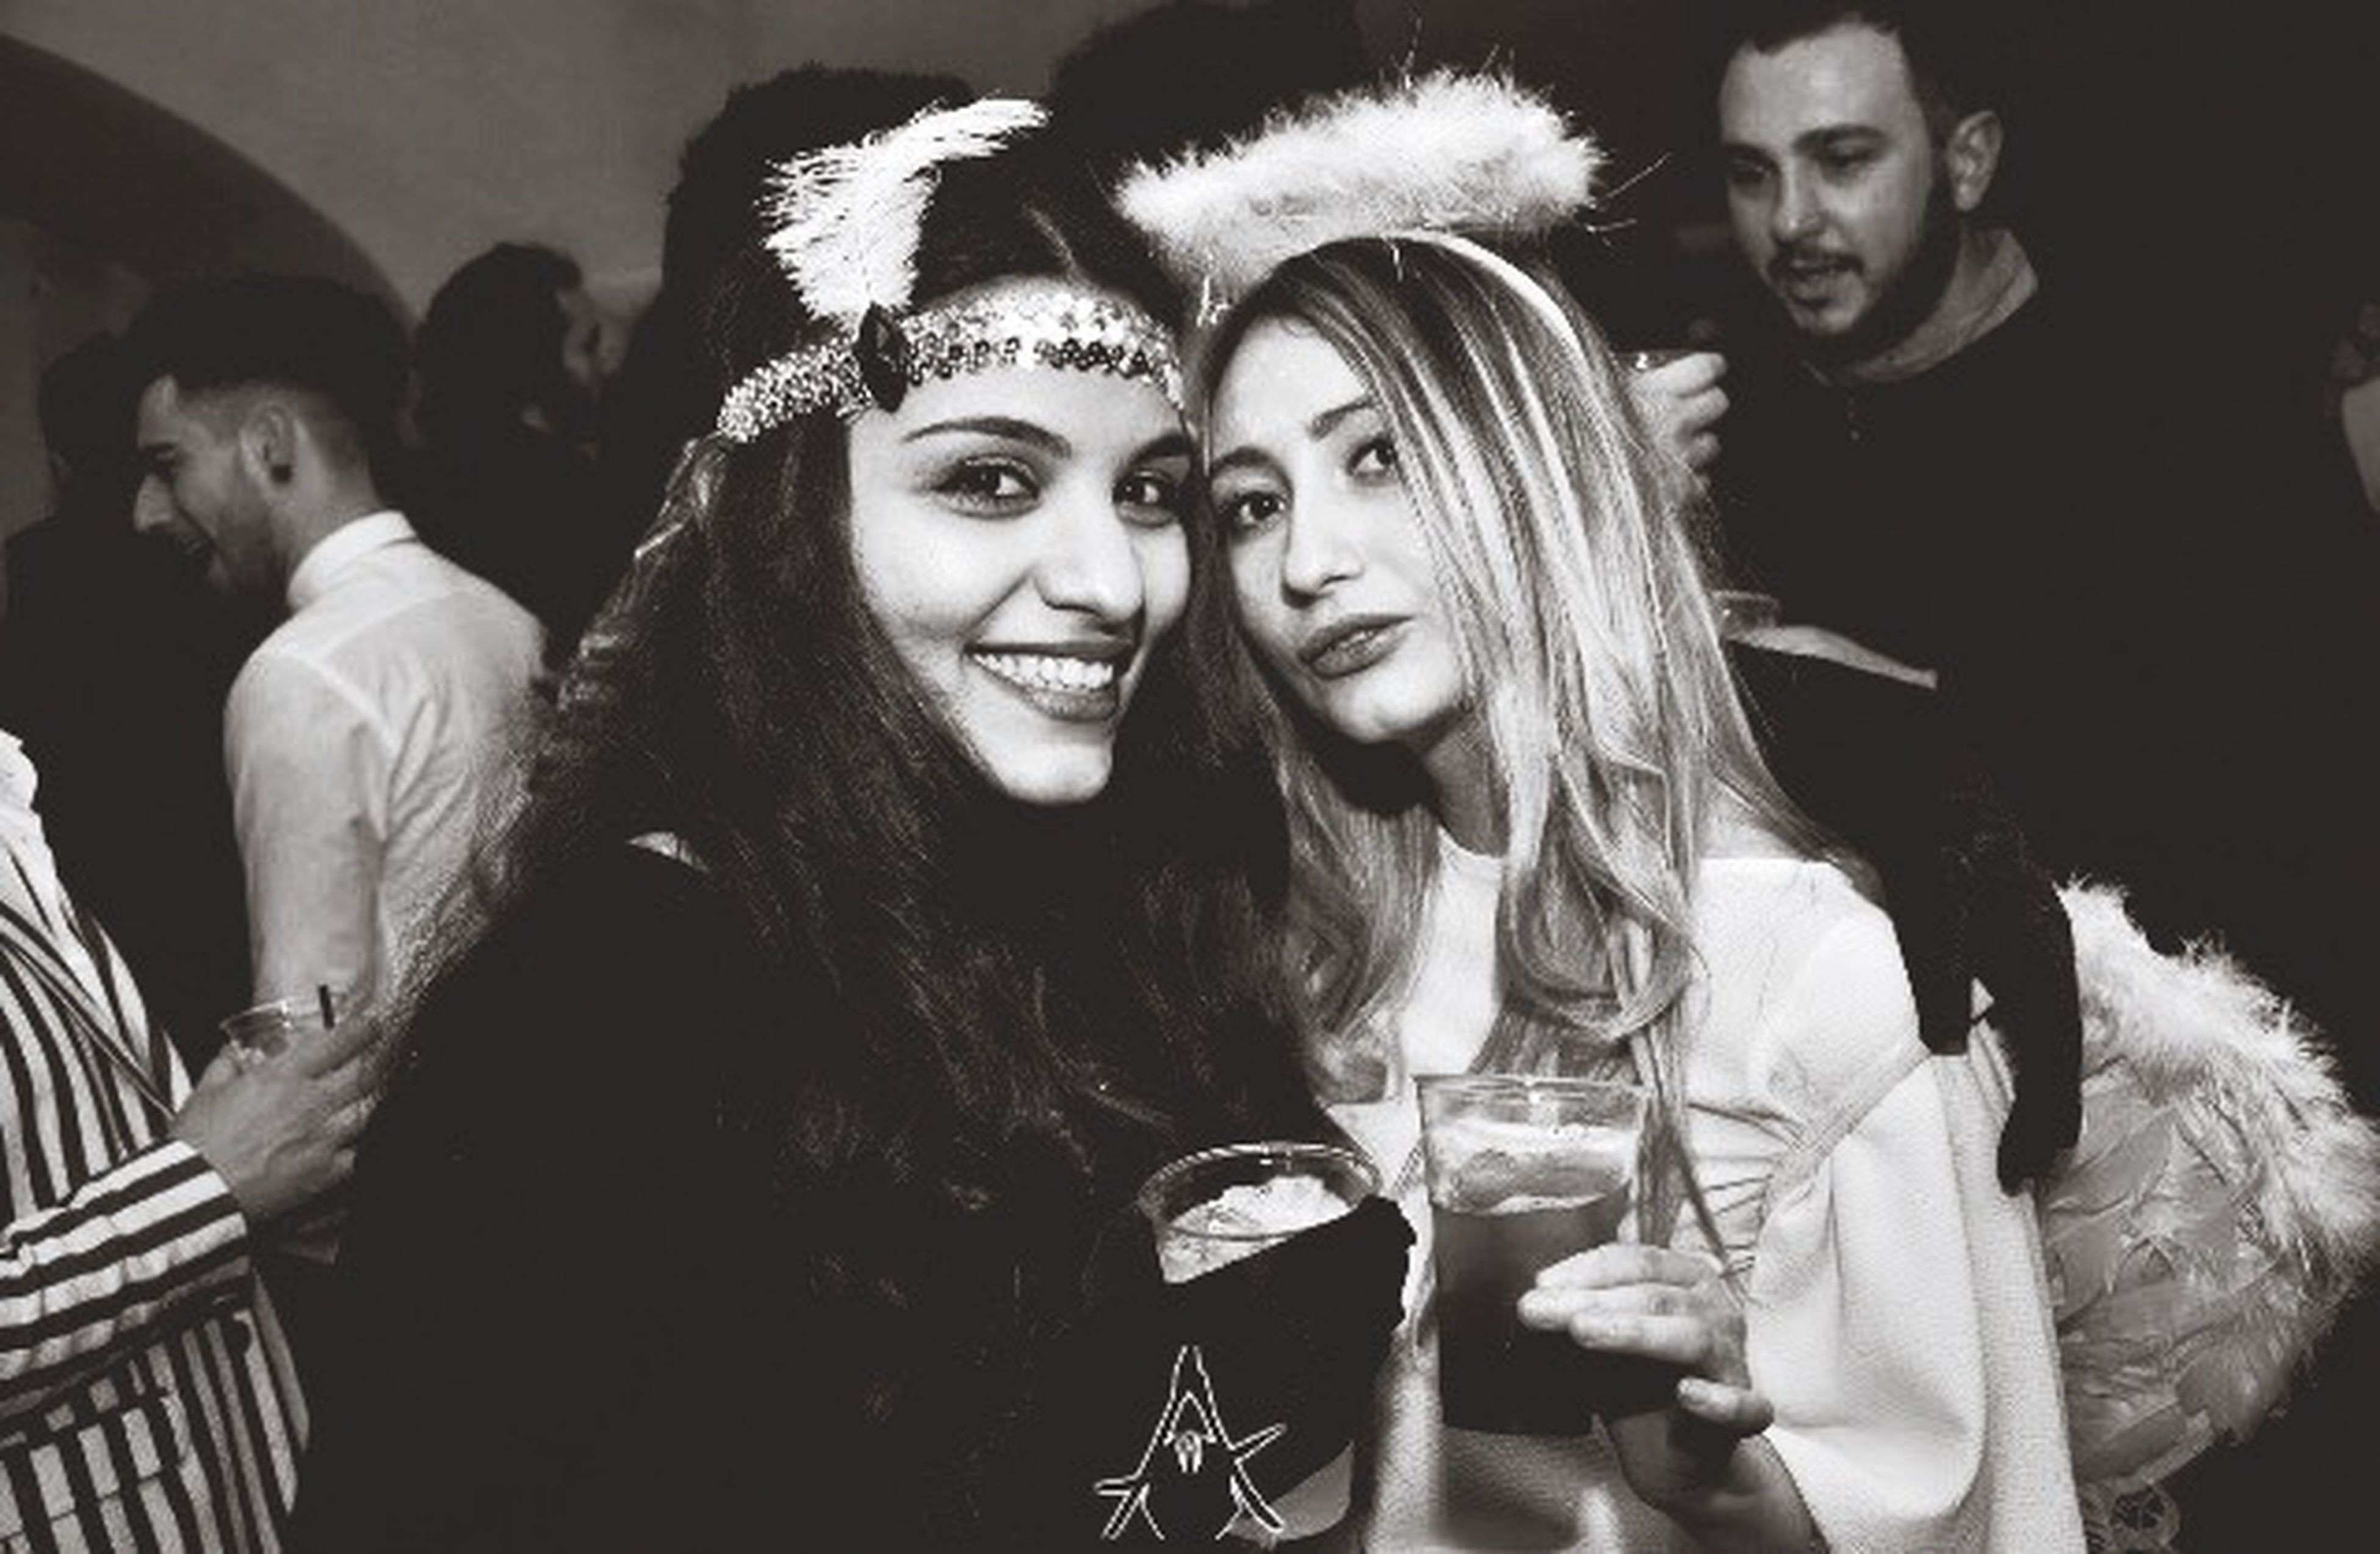 young adult, night, party - social event, young women, women, two people, arts culture and entertainment, fun, nightlife, people, adult, adults only, city, friendship, portrait, togetherness, indoors, happy hour